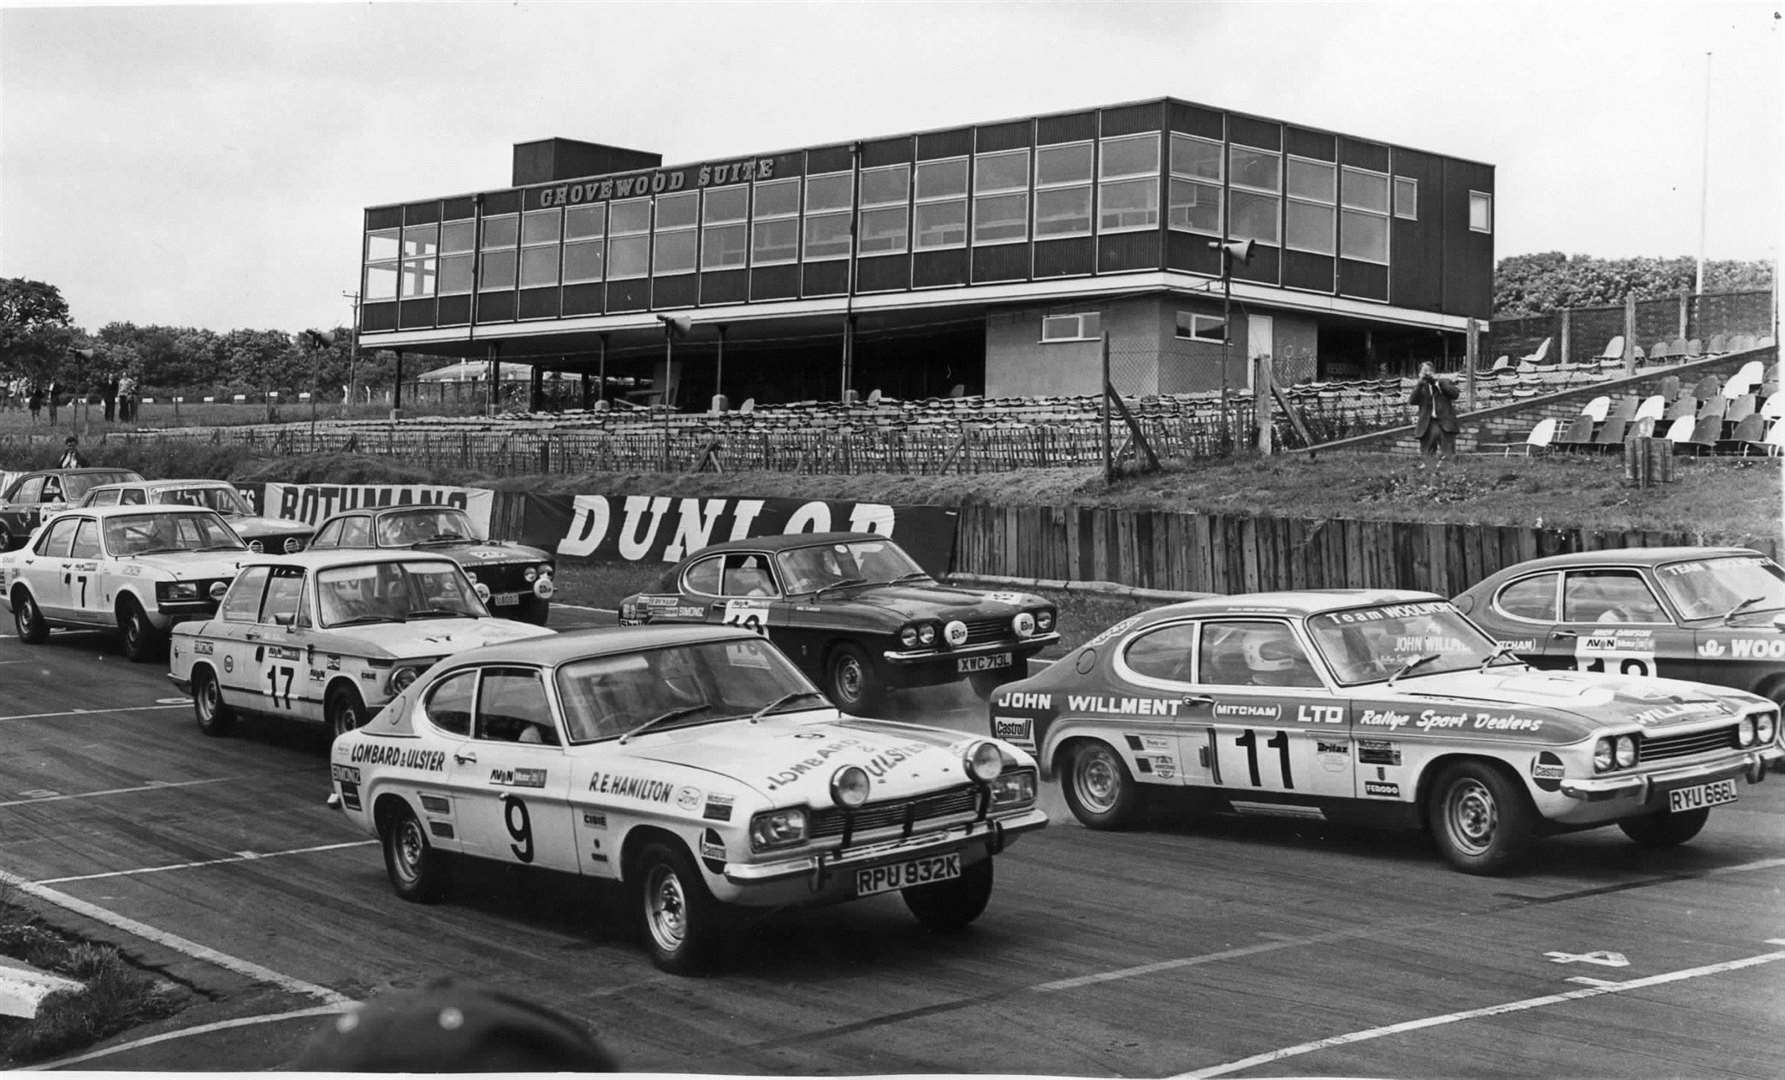 The start of a 20-minute race at Brands in 1973 which included a Capri 3000, centre of picture, owned by Prince Michael and driven by Nigel Clarkson